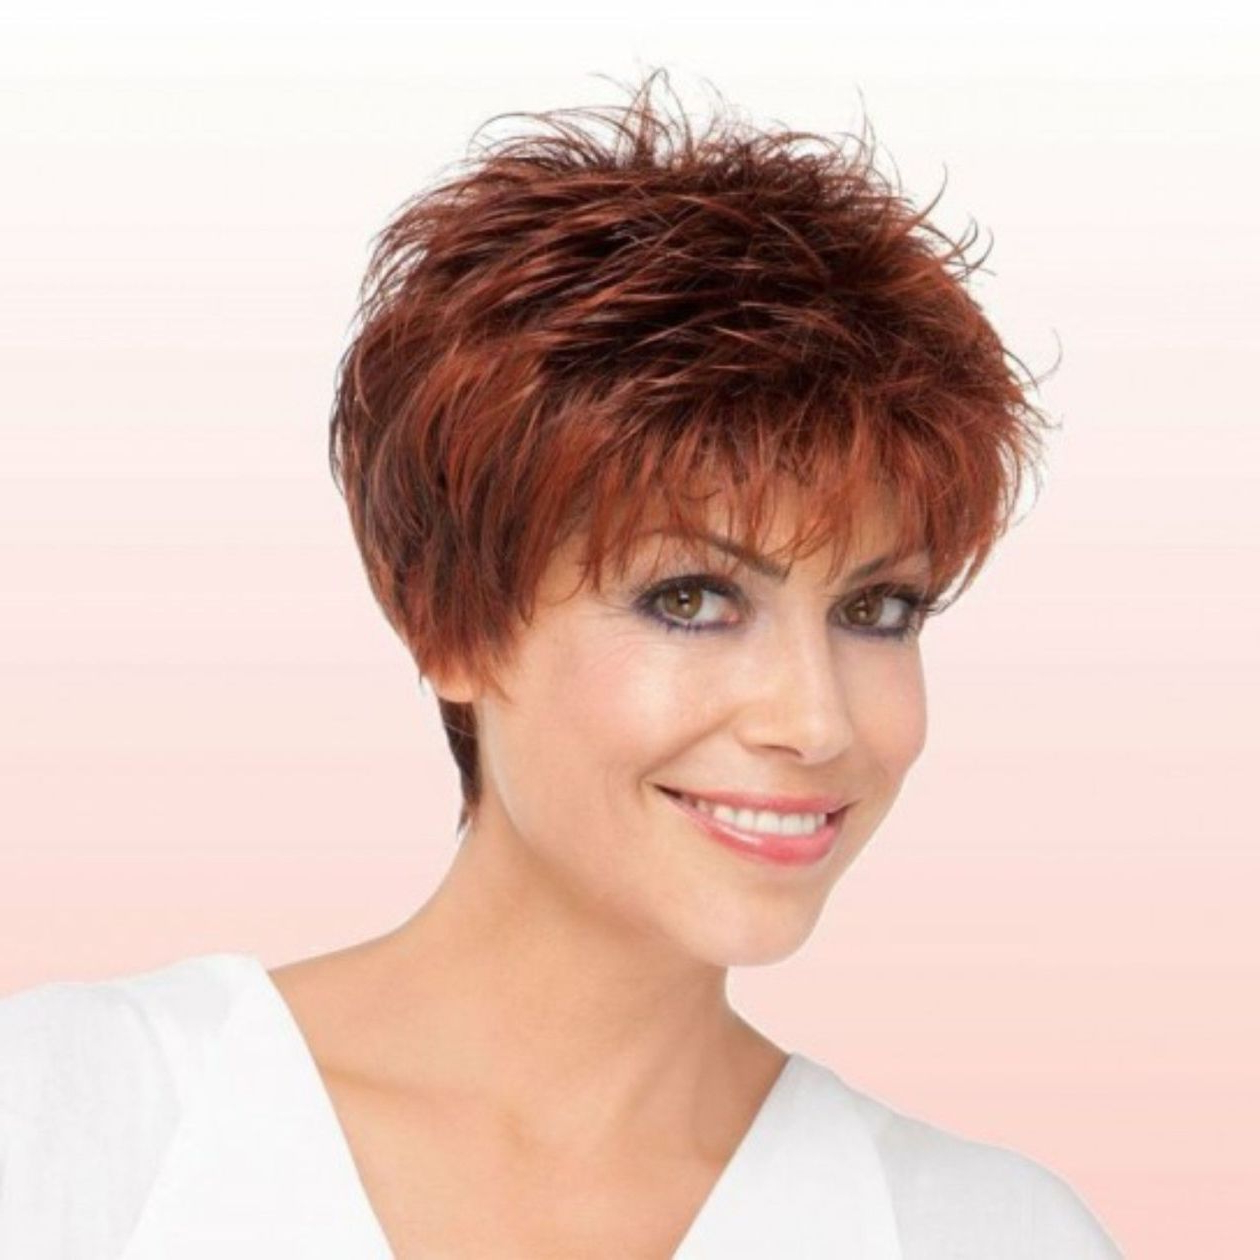 90 Classy And Simple Short Hairstyles For Women Over 50 Within Short Feathered Hairstyles (View 3 of 20)